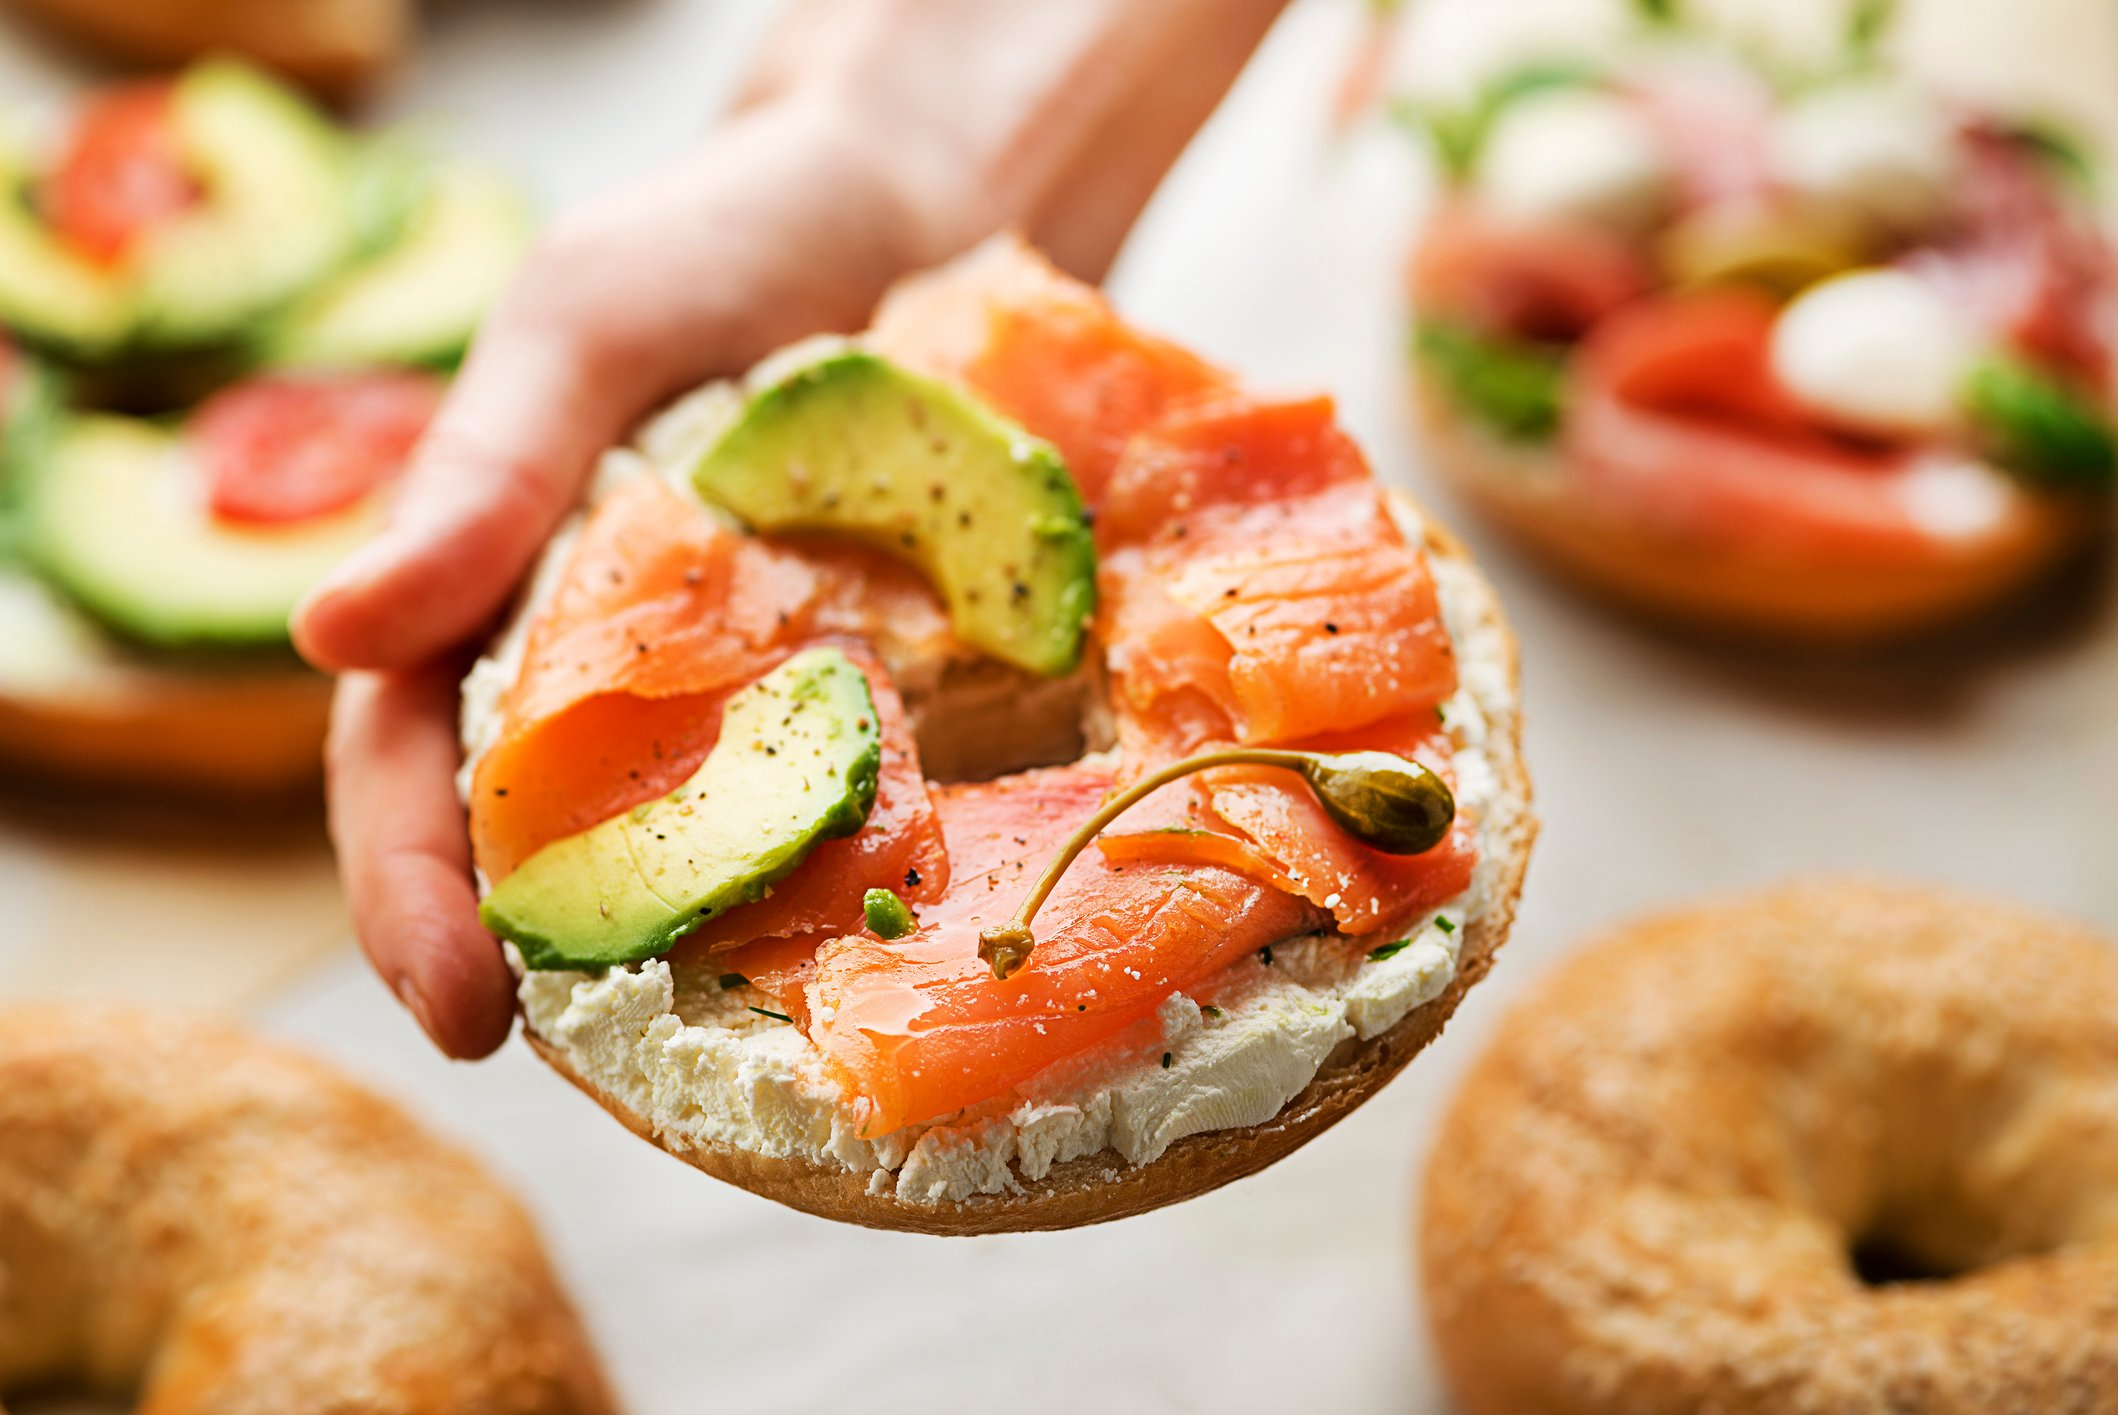 Woman is holding a Bagel with cream, avocado and smoked salmon oHealthy breakfast food.